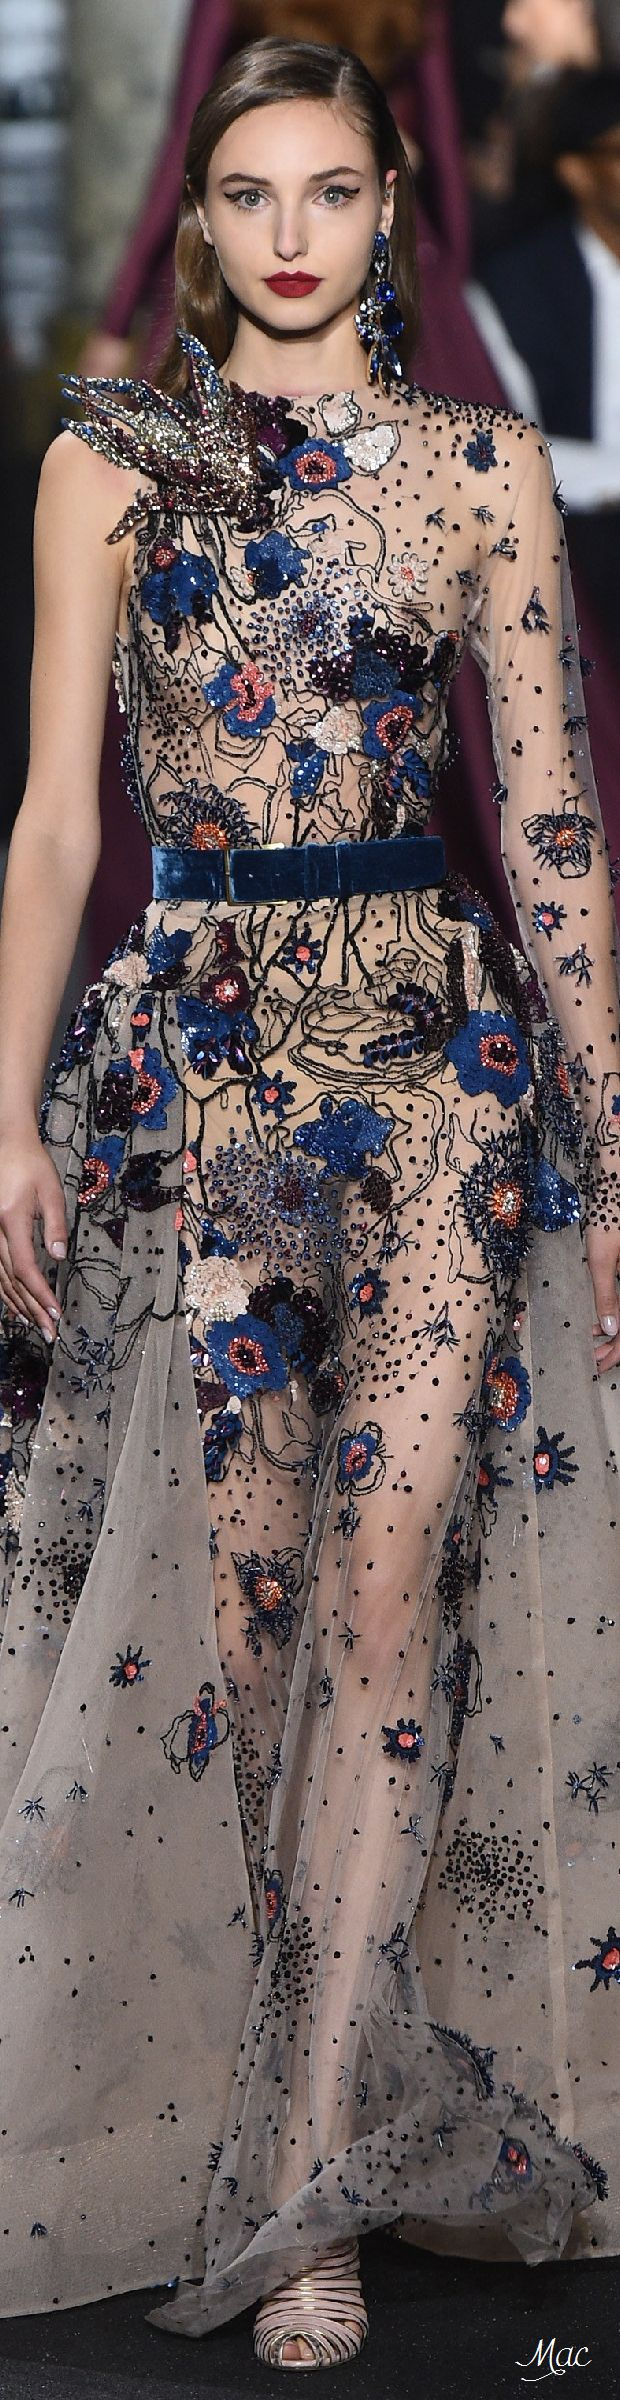 Fall 2016 Haute Couture - Elie Saab                                                                                                                                                                                 More